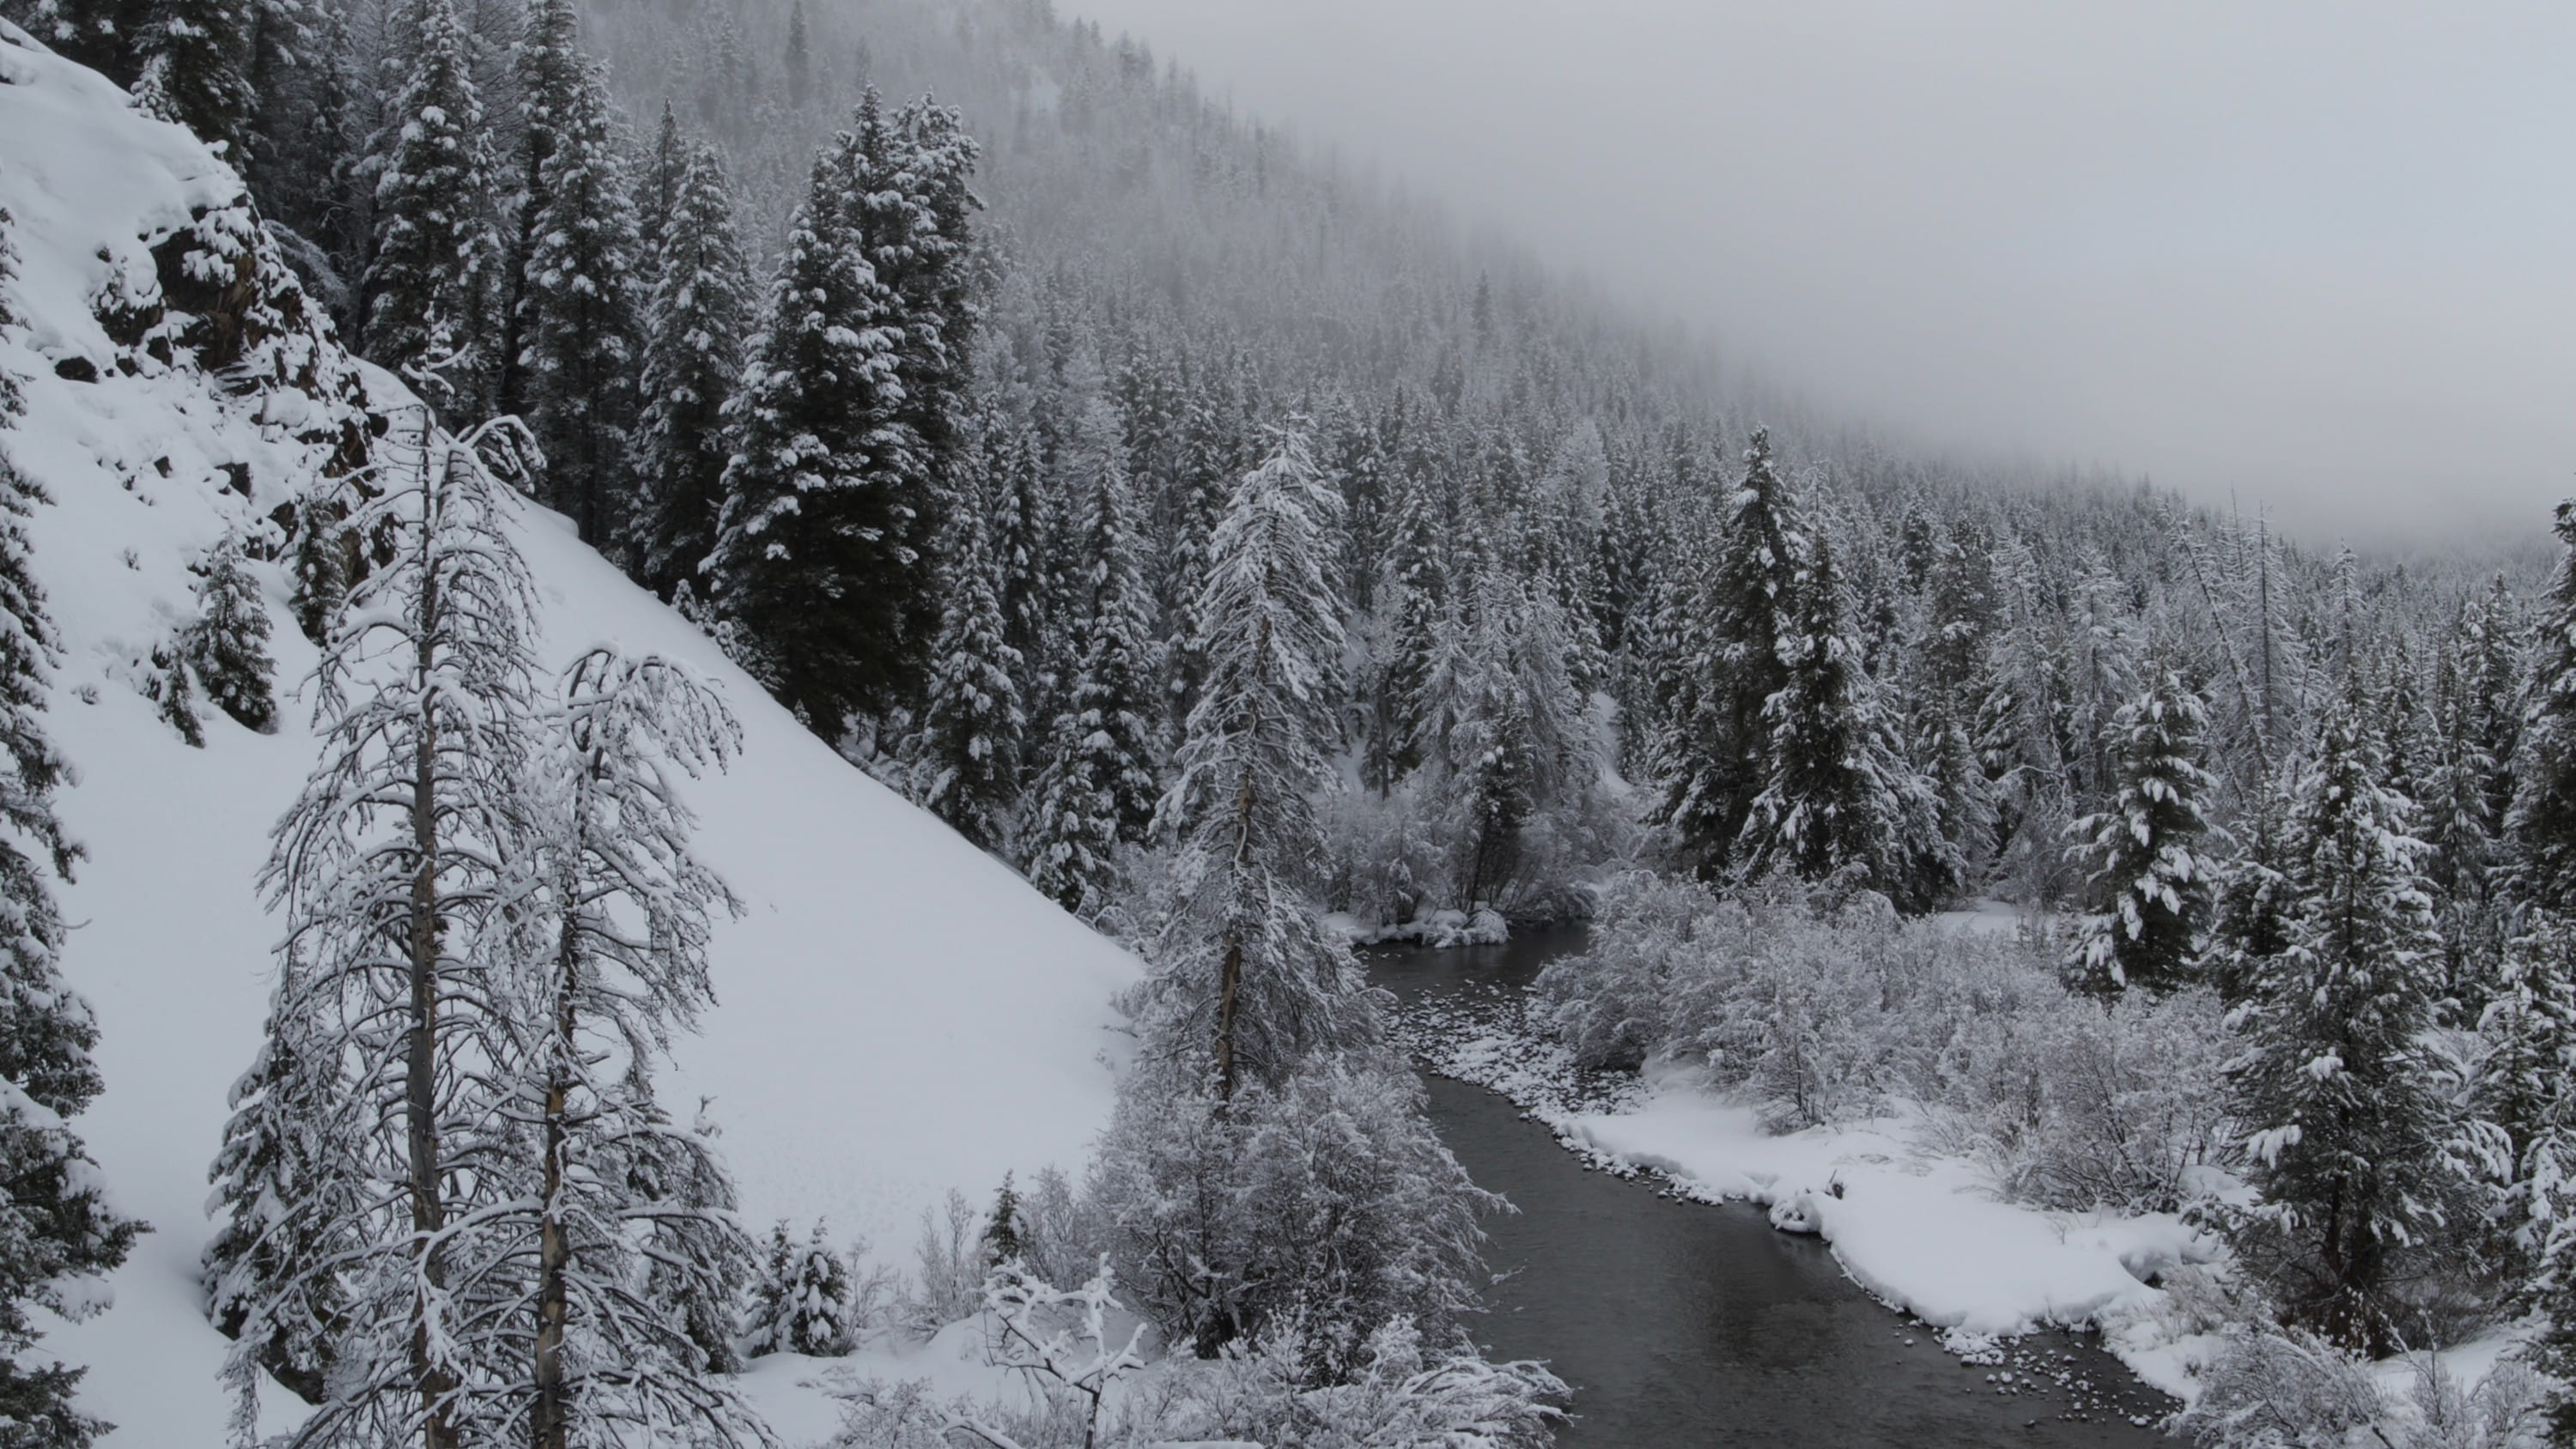 Big Wood River in Idaho with snow-covered Evergreen trees on the mountain ridge. (National Geographic for Disney+)